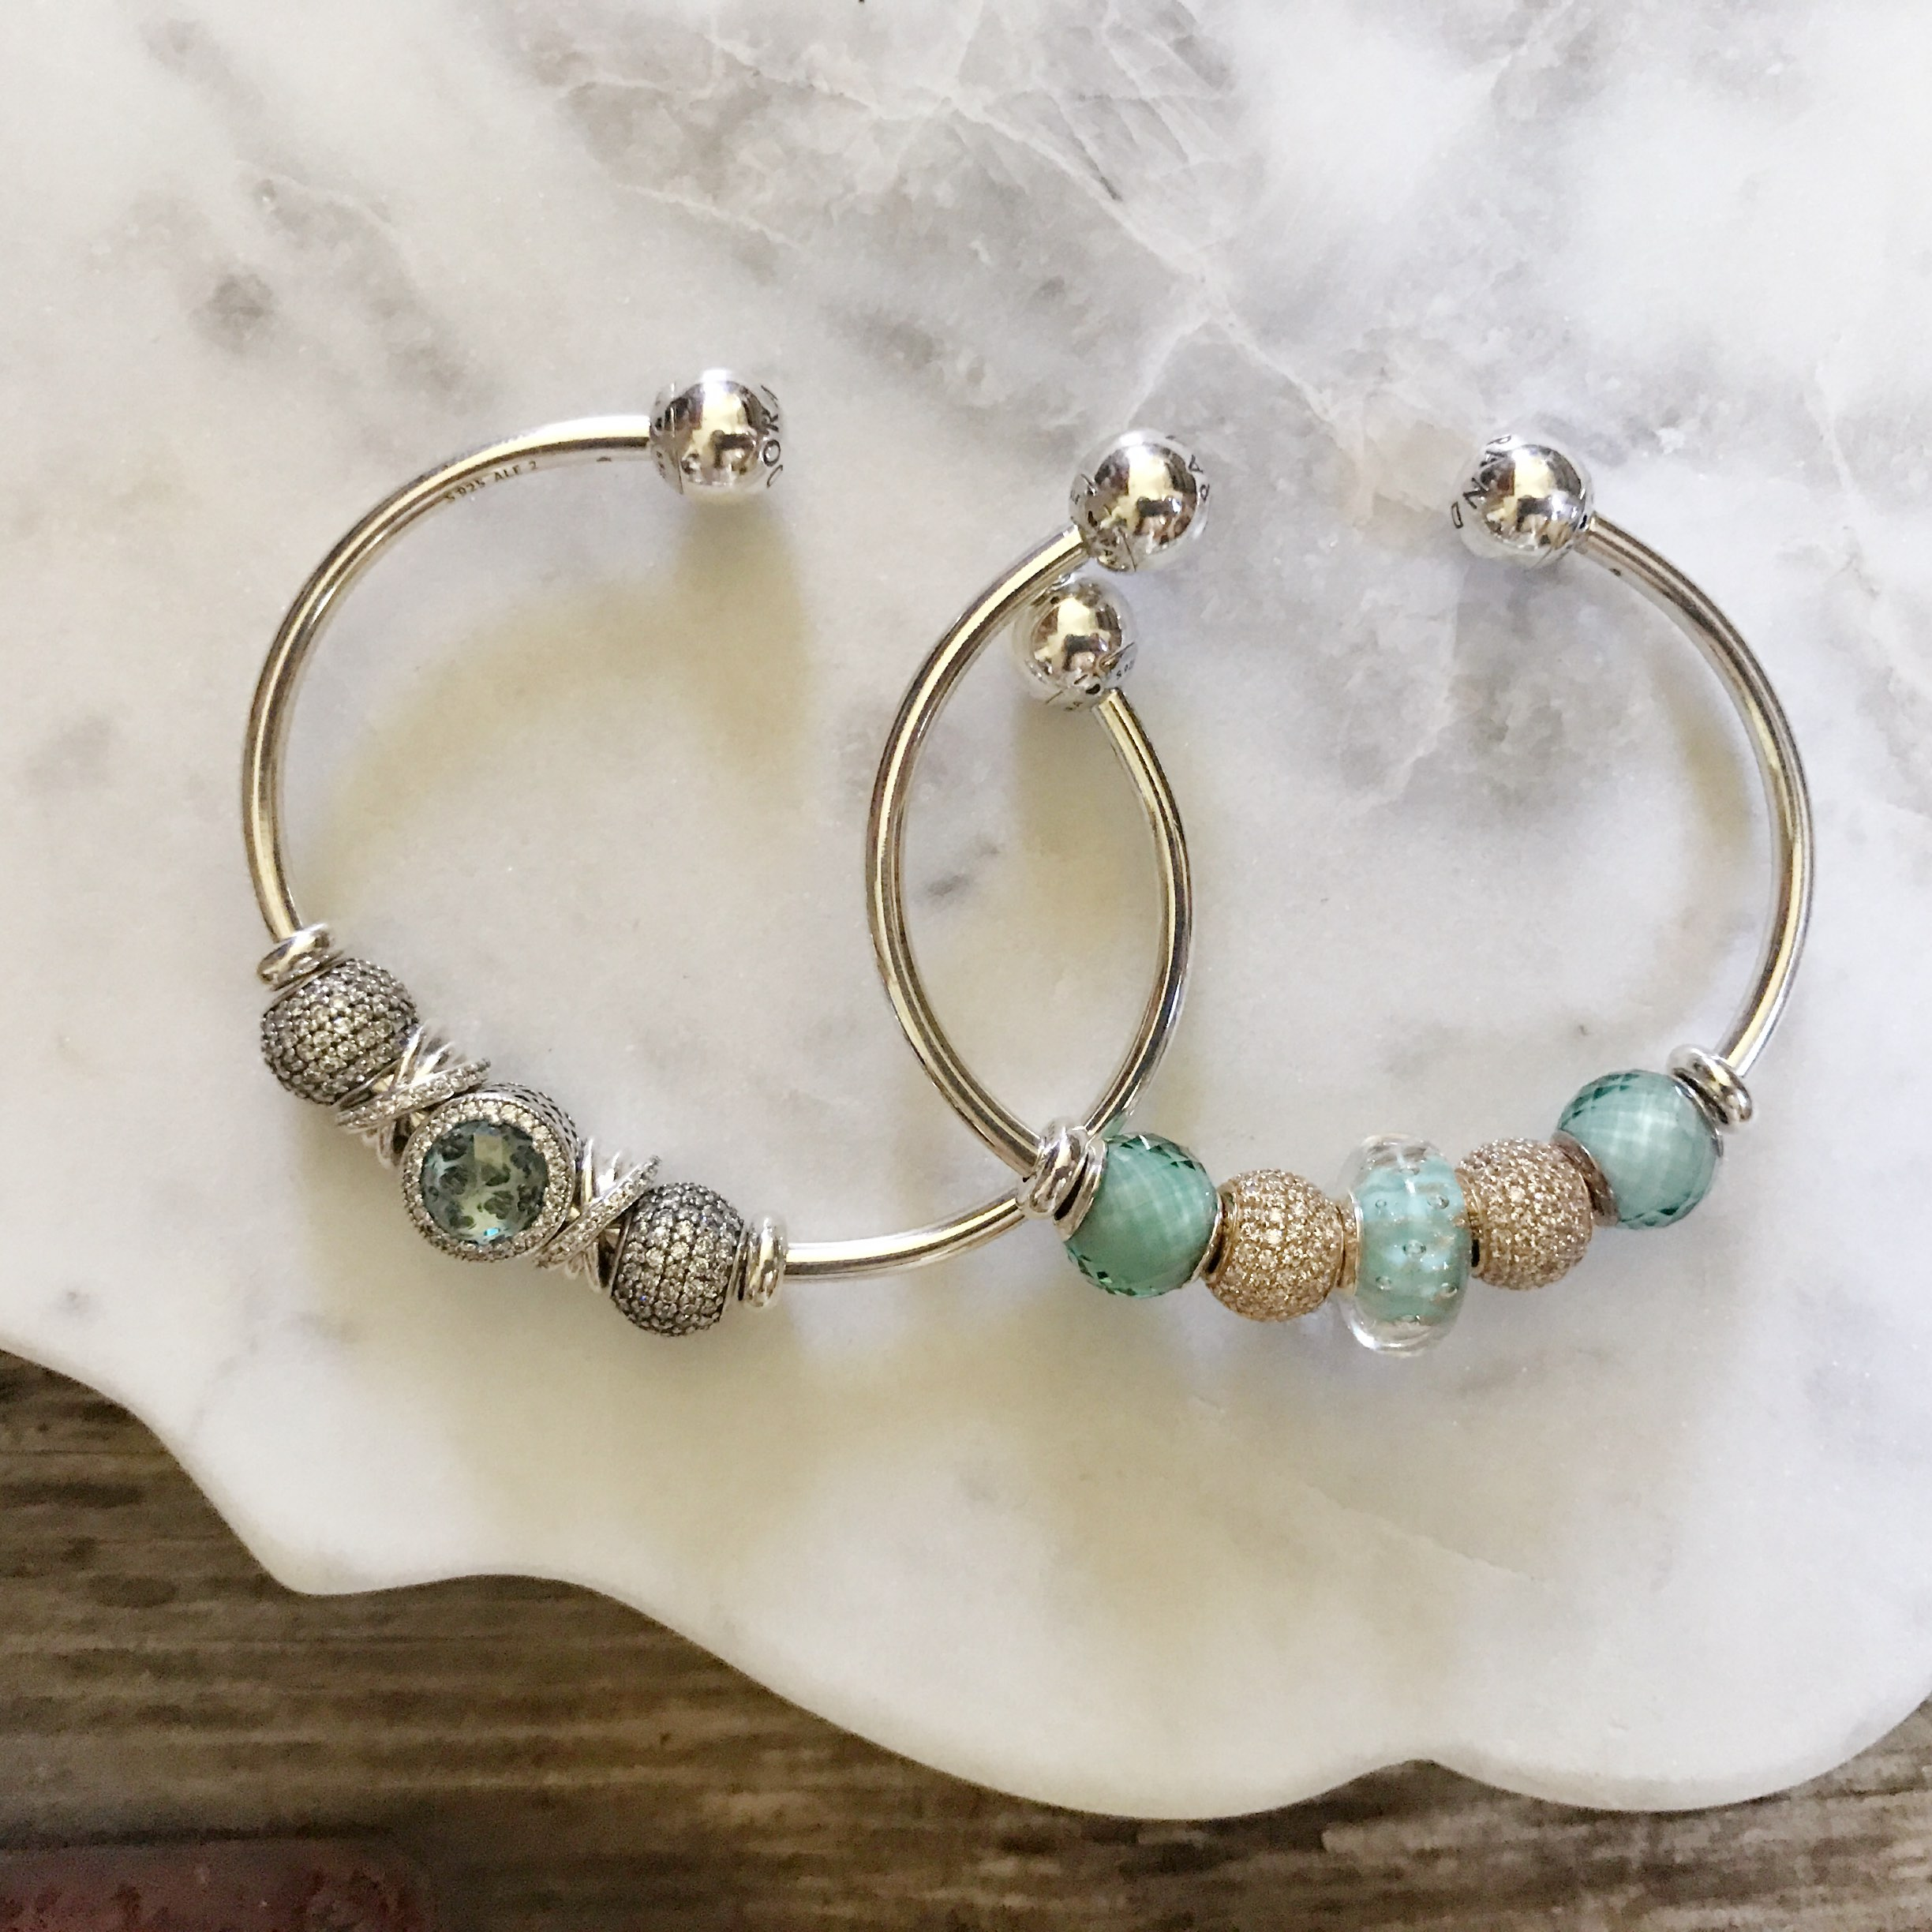 touch a bethlehem silver love we arrival with bangle by bright introducing in index of versant mixing sterling bangles rose new bracelet at open the pandora